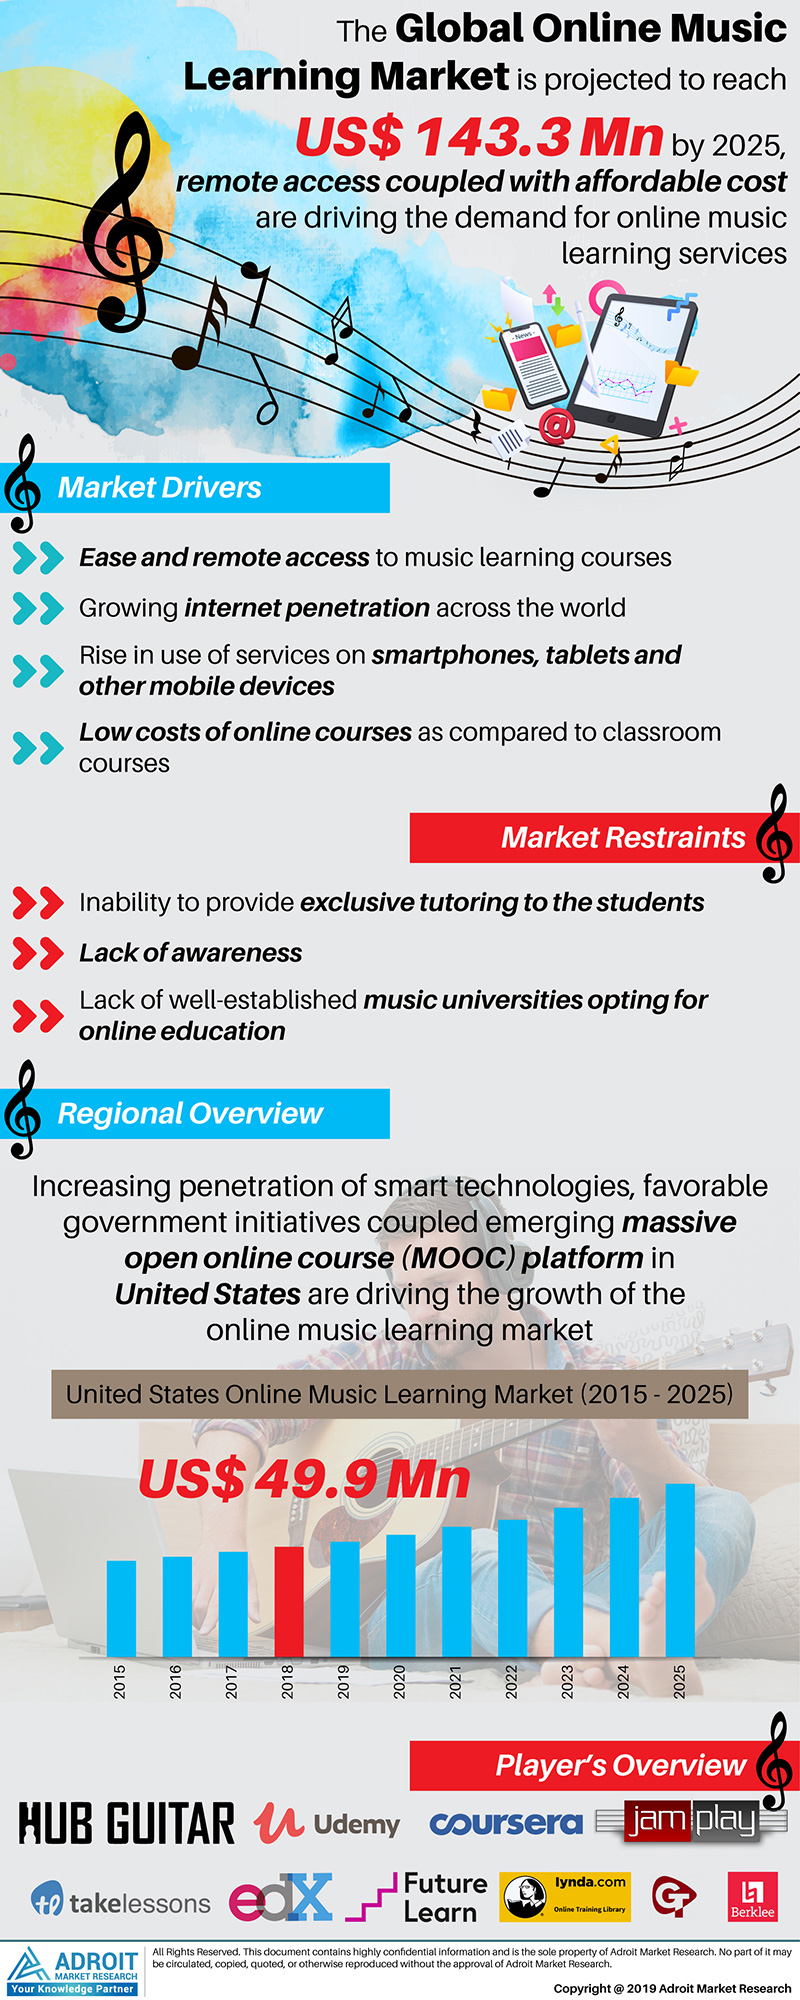 Global Online Music Learning Market Size 2017 By Region and Forecast 2019 to 2025